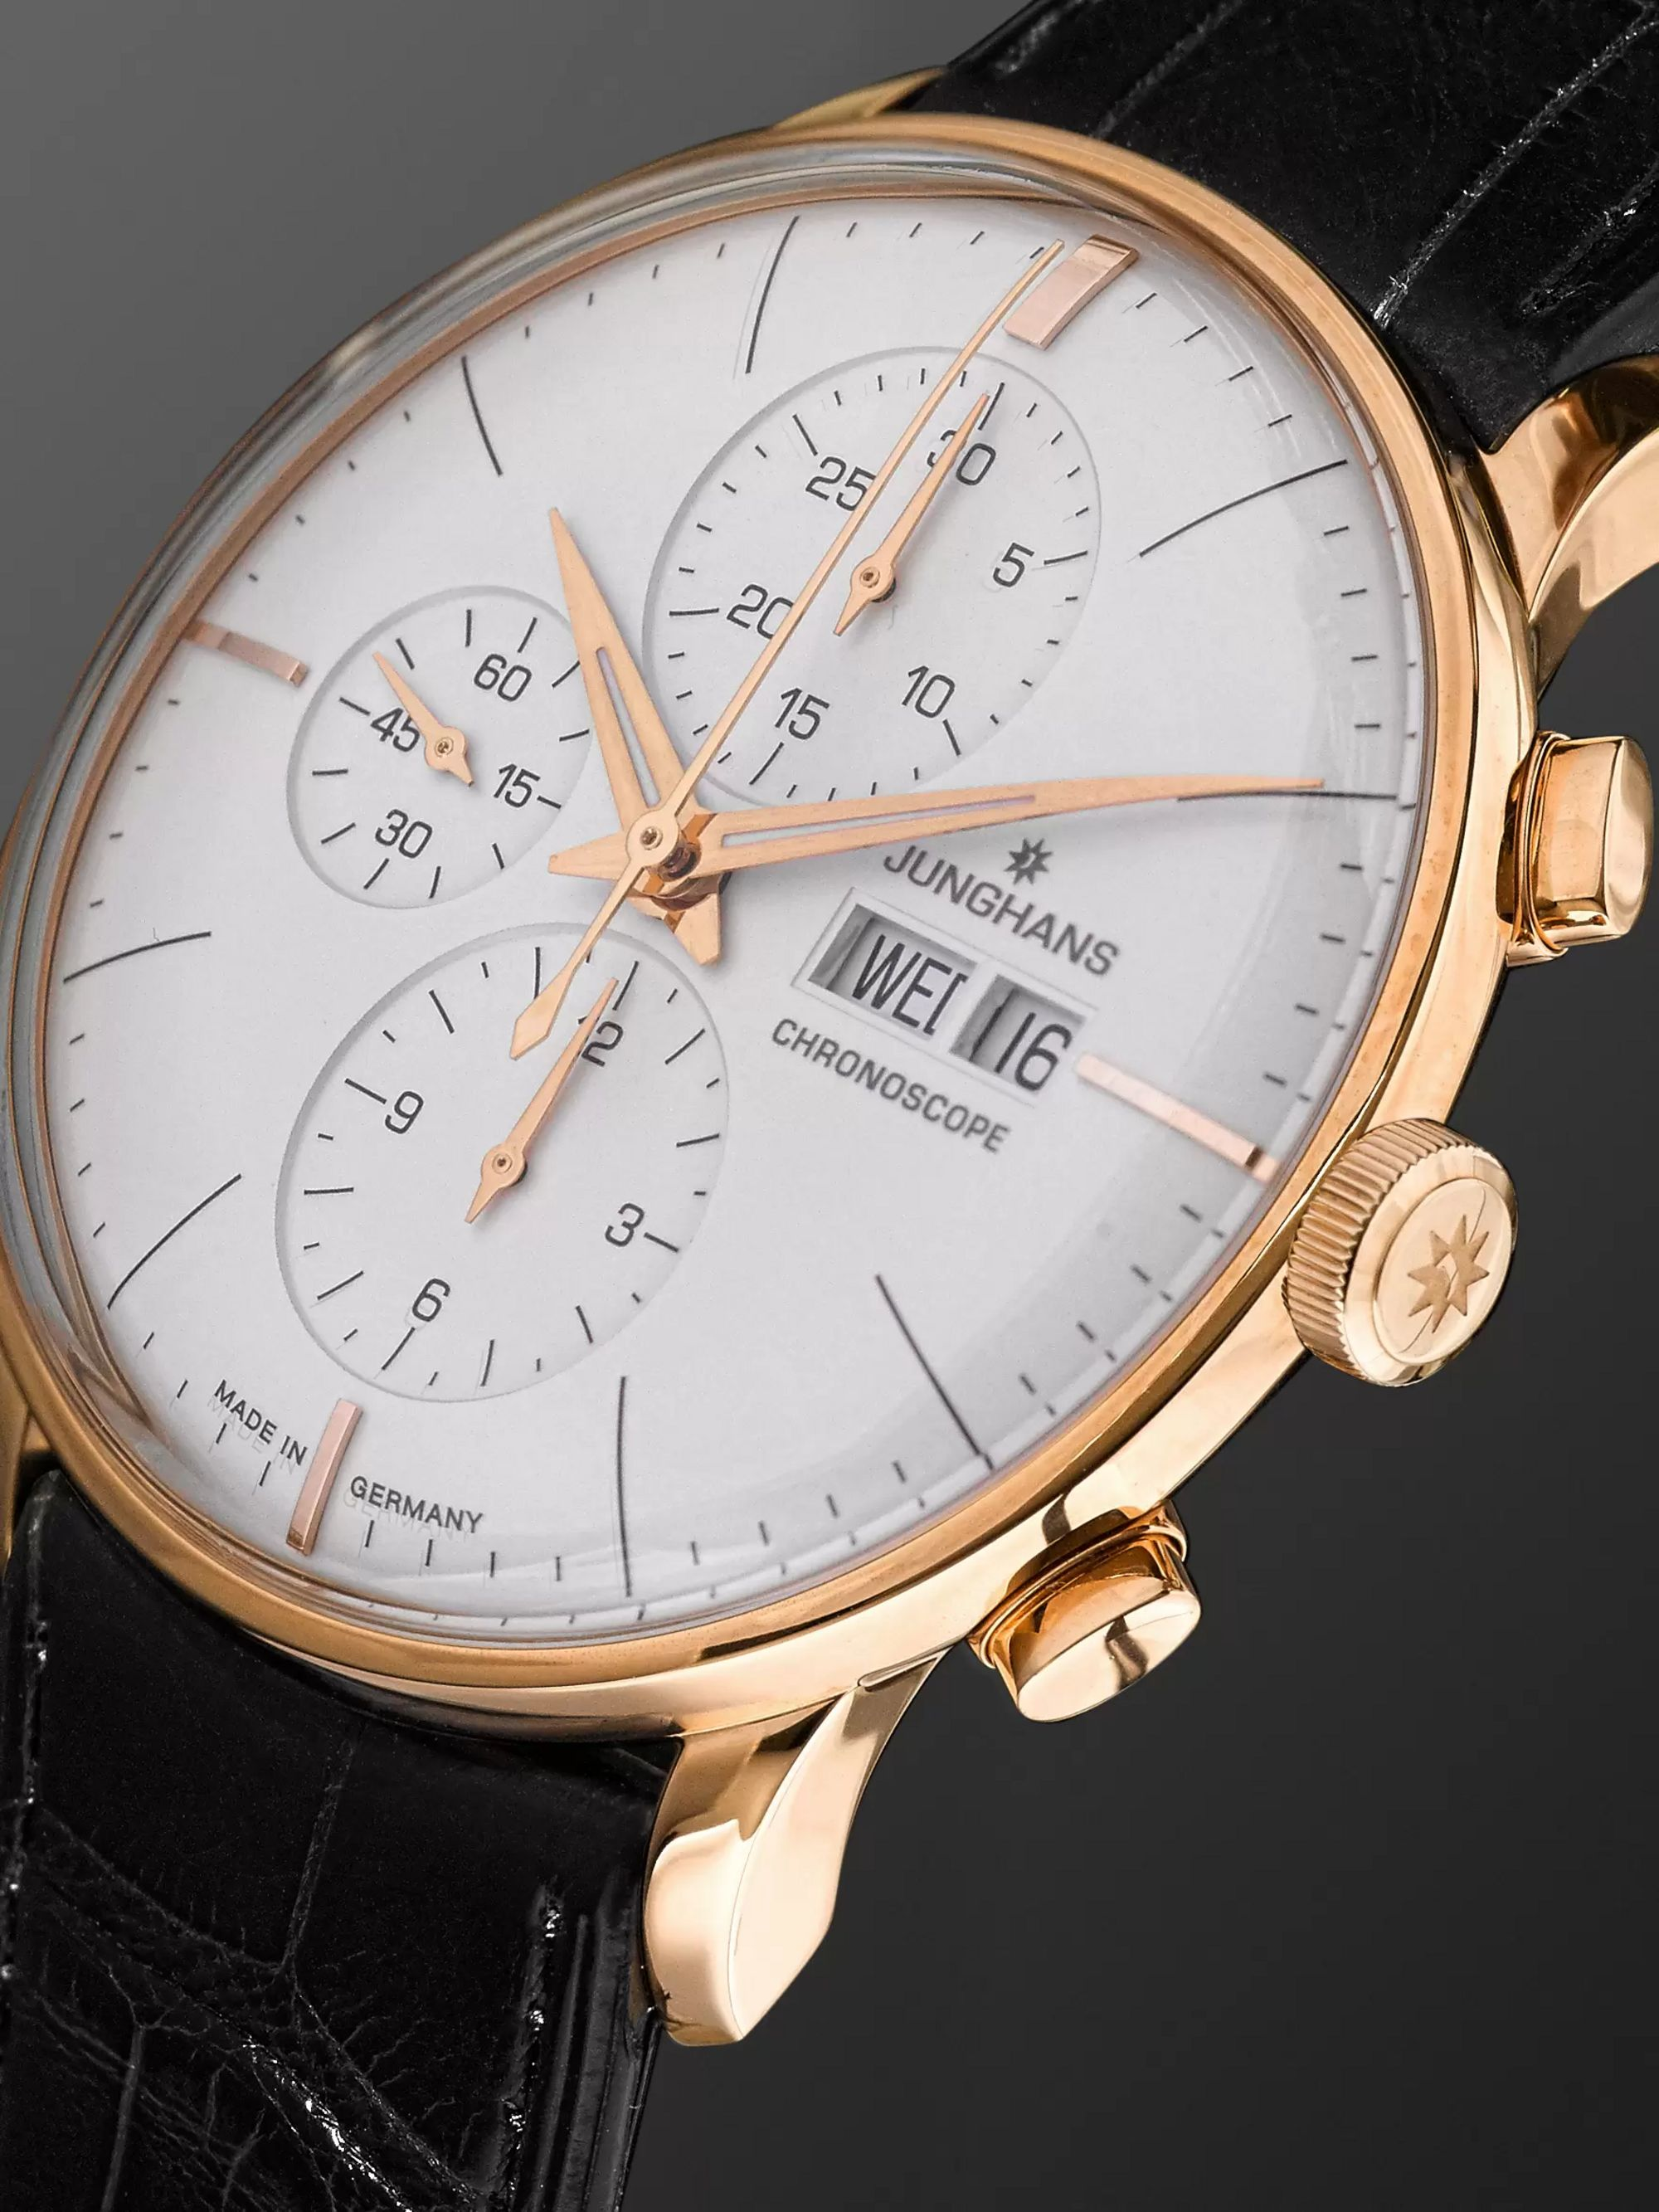 Junghans Meister Chronoscope 40mm Gold-Tone and Alligator Watch, Ref. No. 027/7323.01